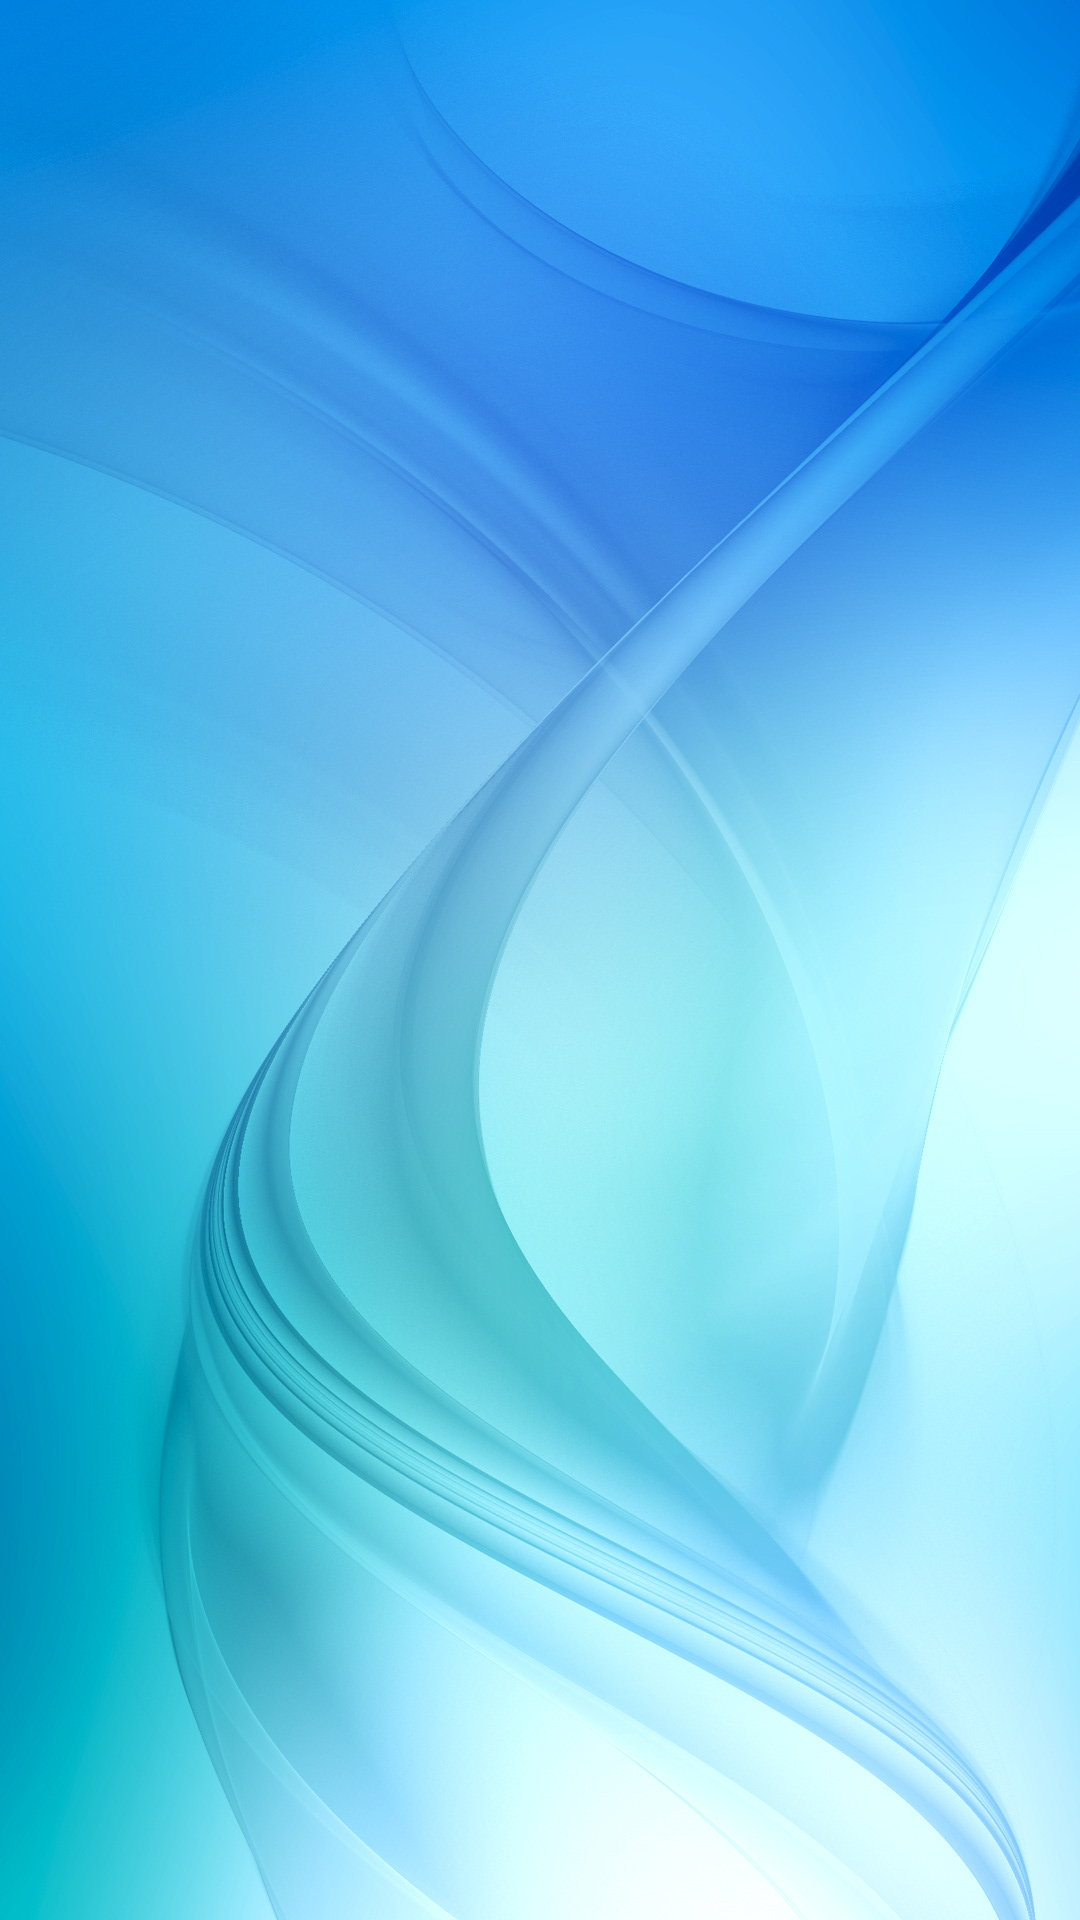 Wallpapers Huawei Ascend P7 Pack 005 Wallsphone